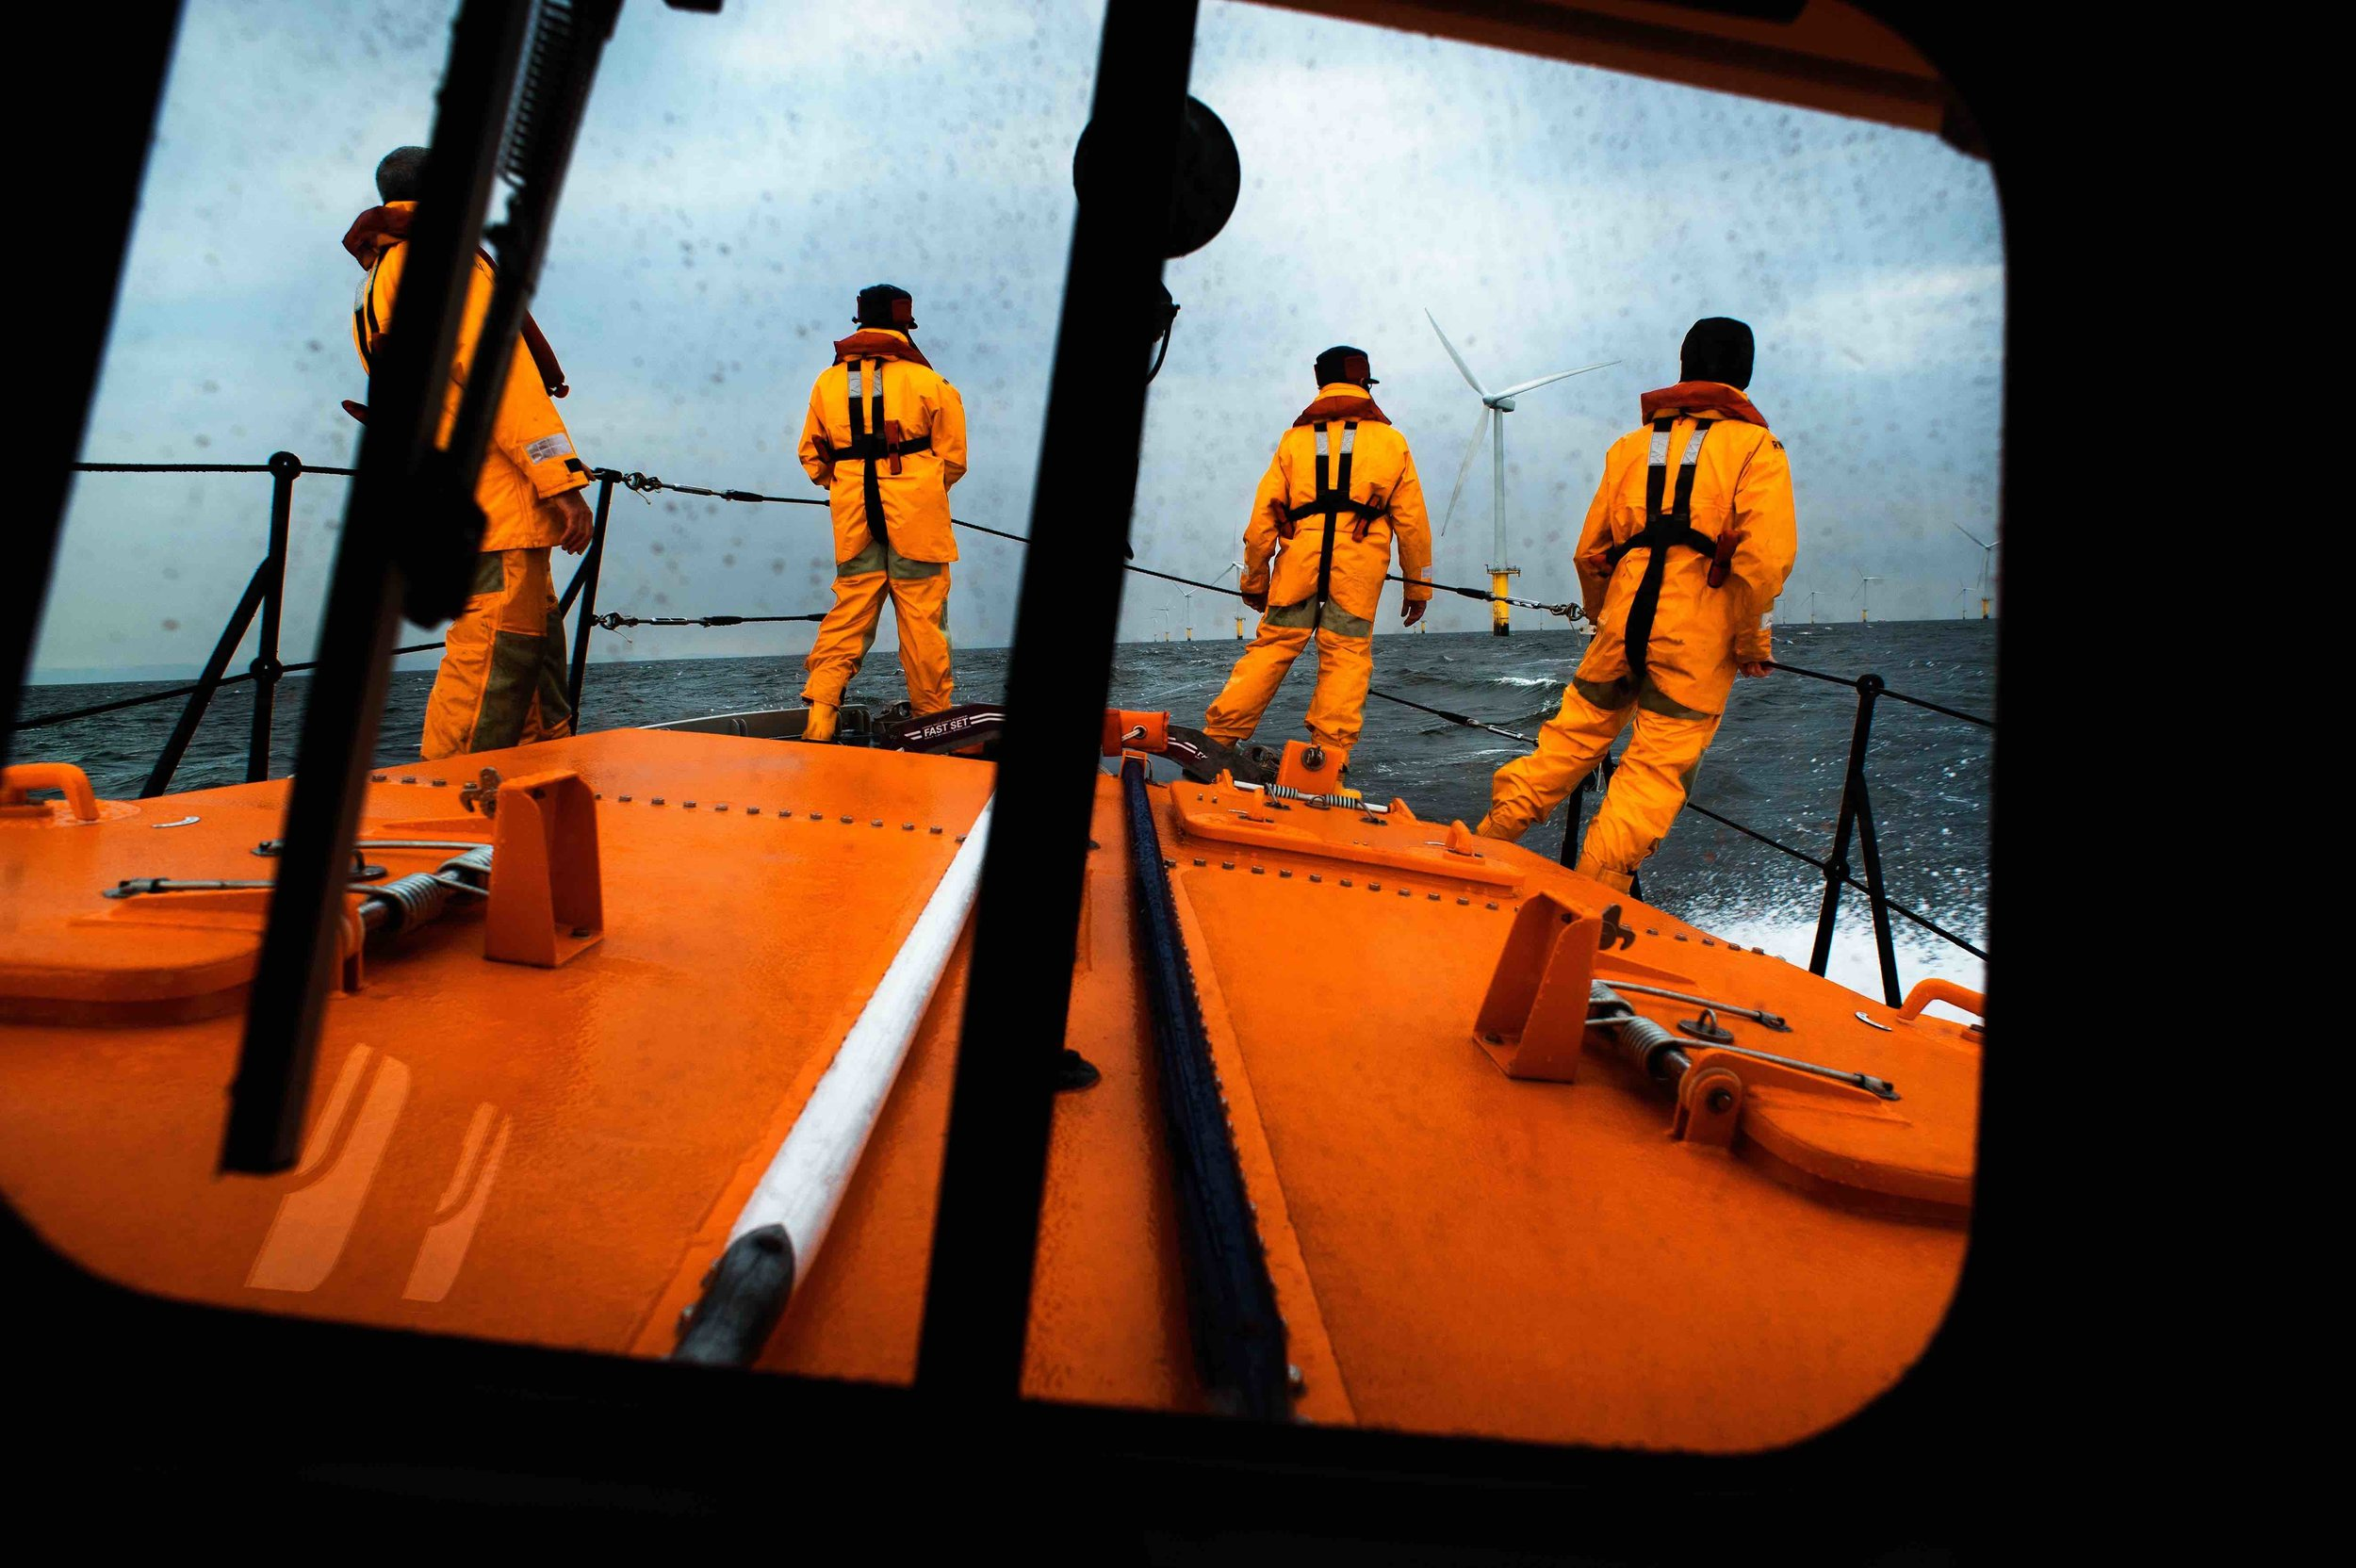 lifeboat-finisterre-goodfromyou-2.jpg